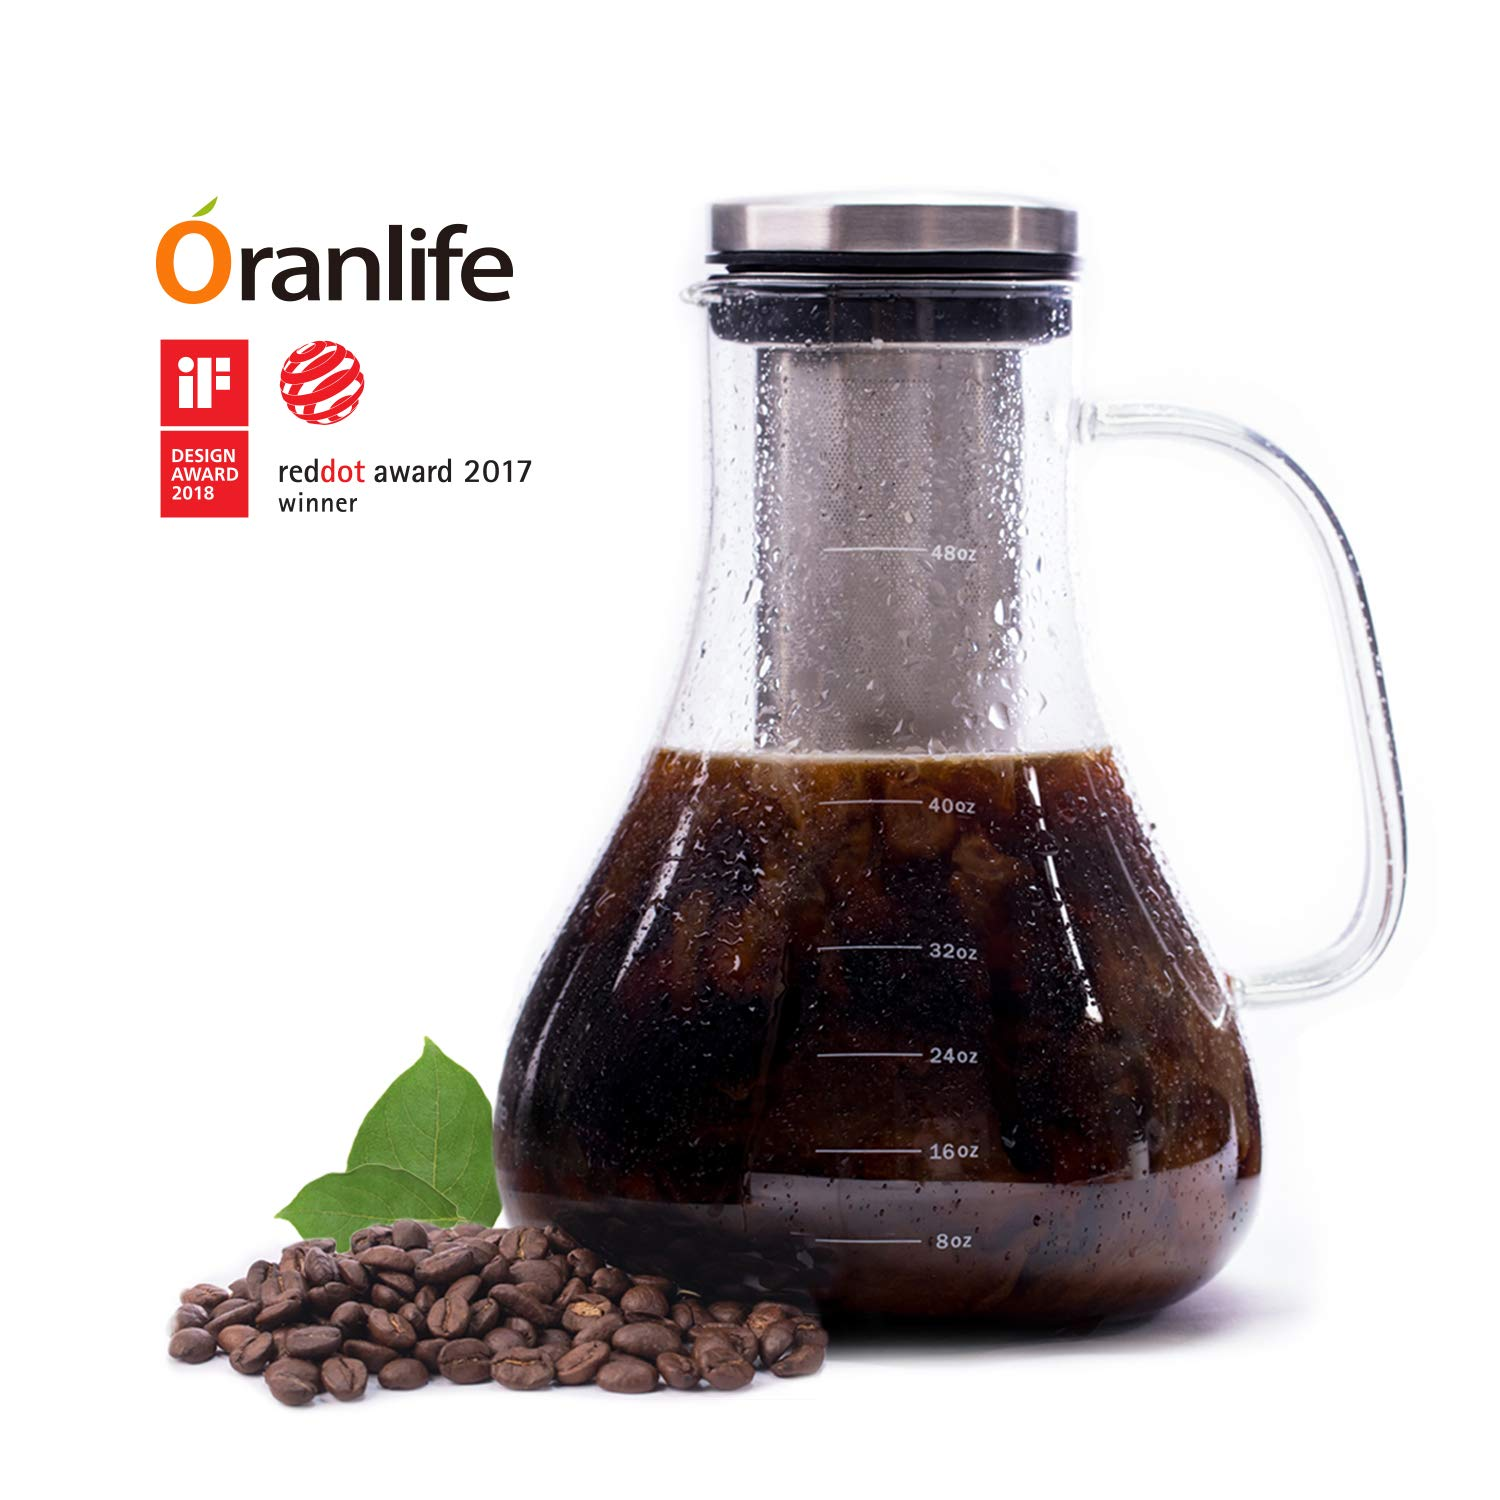 Cold Brew Coffee Maker, Brewing Glass Carafe with Outdoor Travel Deep Removable Stainless Steel Filter and Airtight Lid Infuser Water Bottle Sleeve for Iced Tea Pitcher (3cup) Oranlife